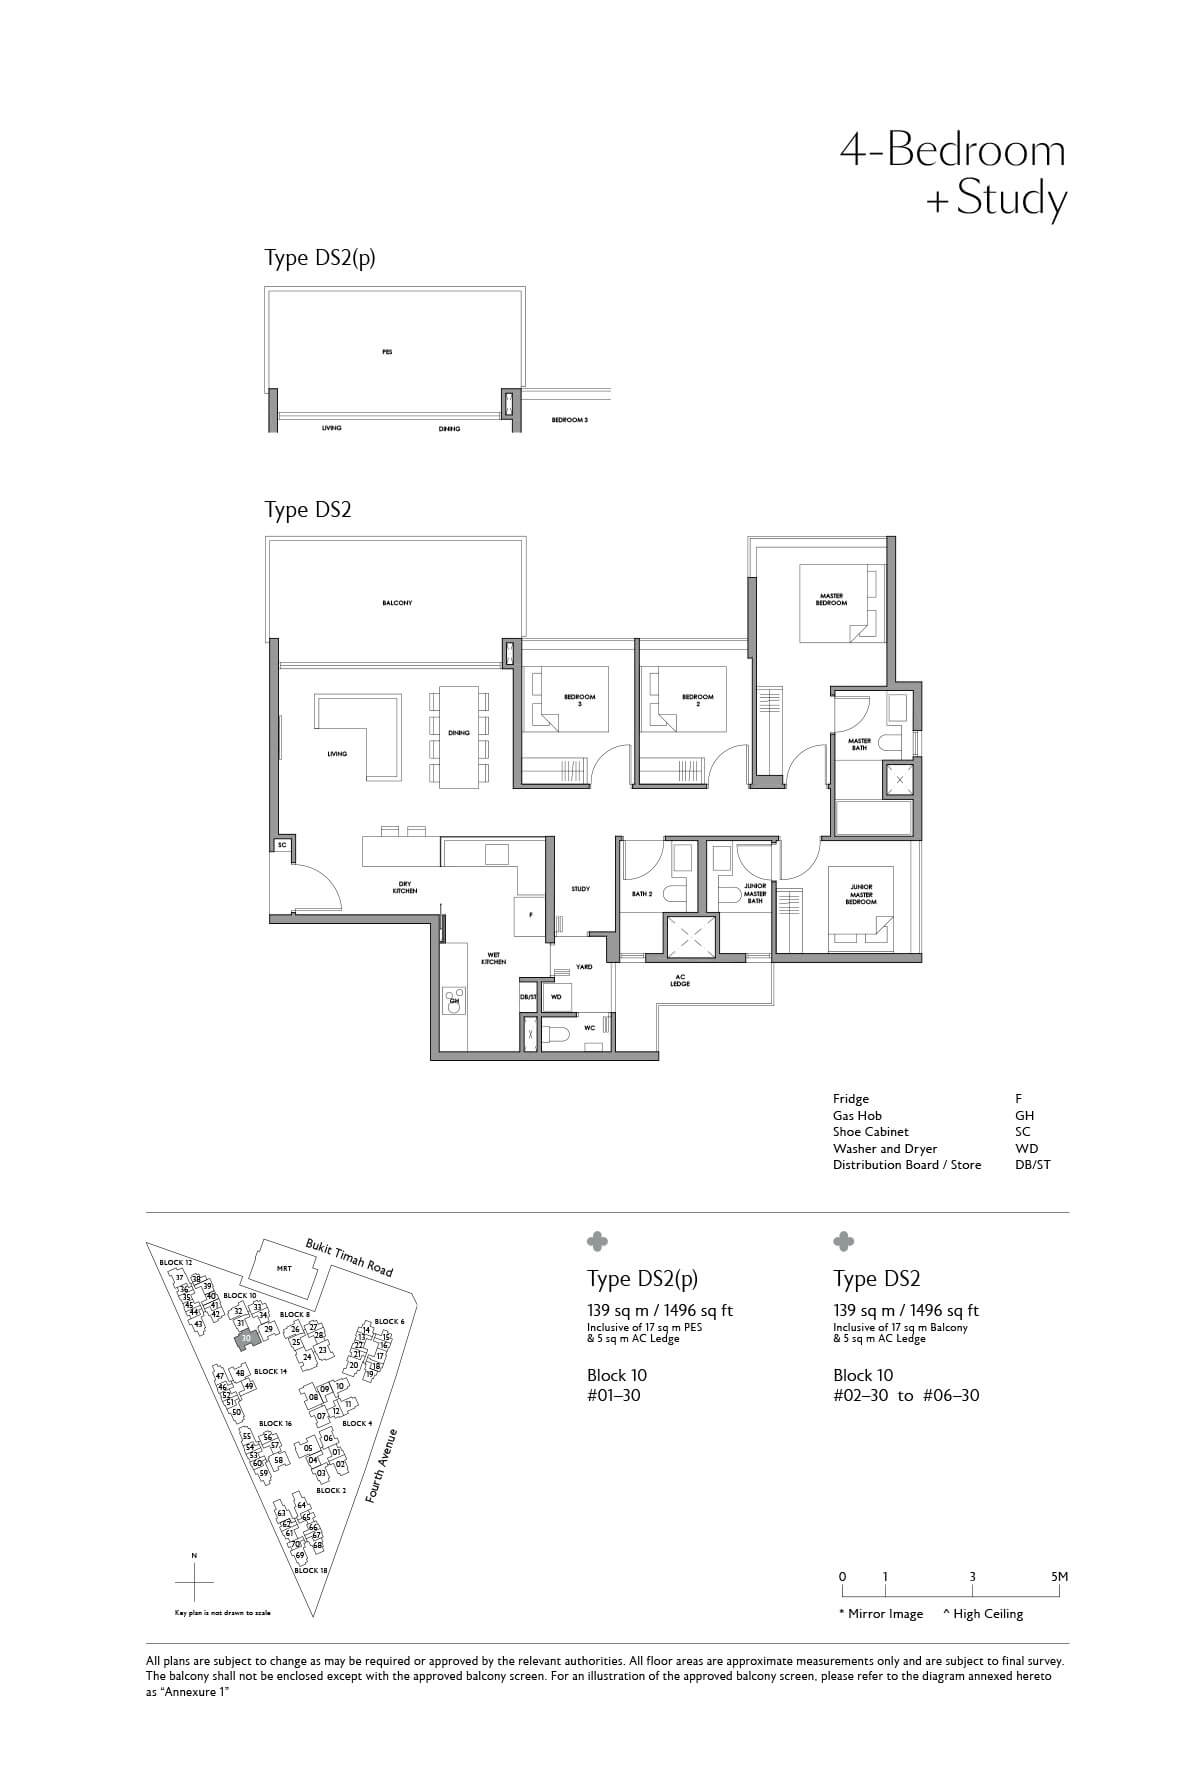 Fourth Avenue Residences Floor Plan 4 Bedroom Study Type DS2